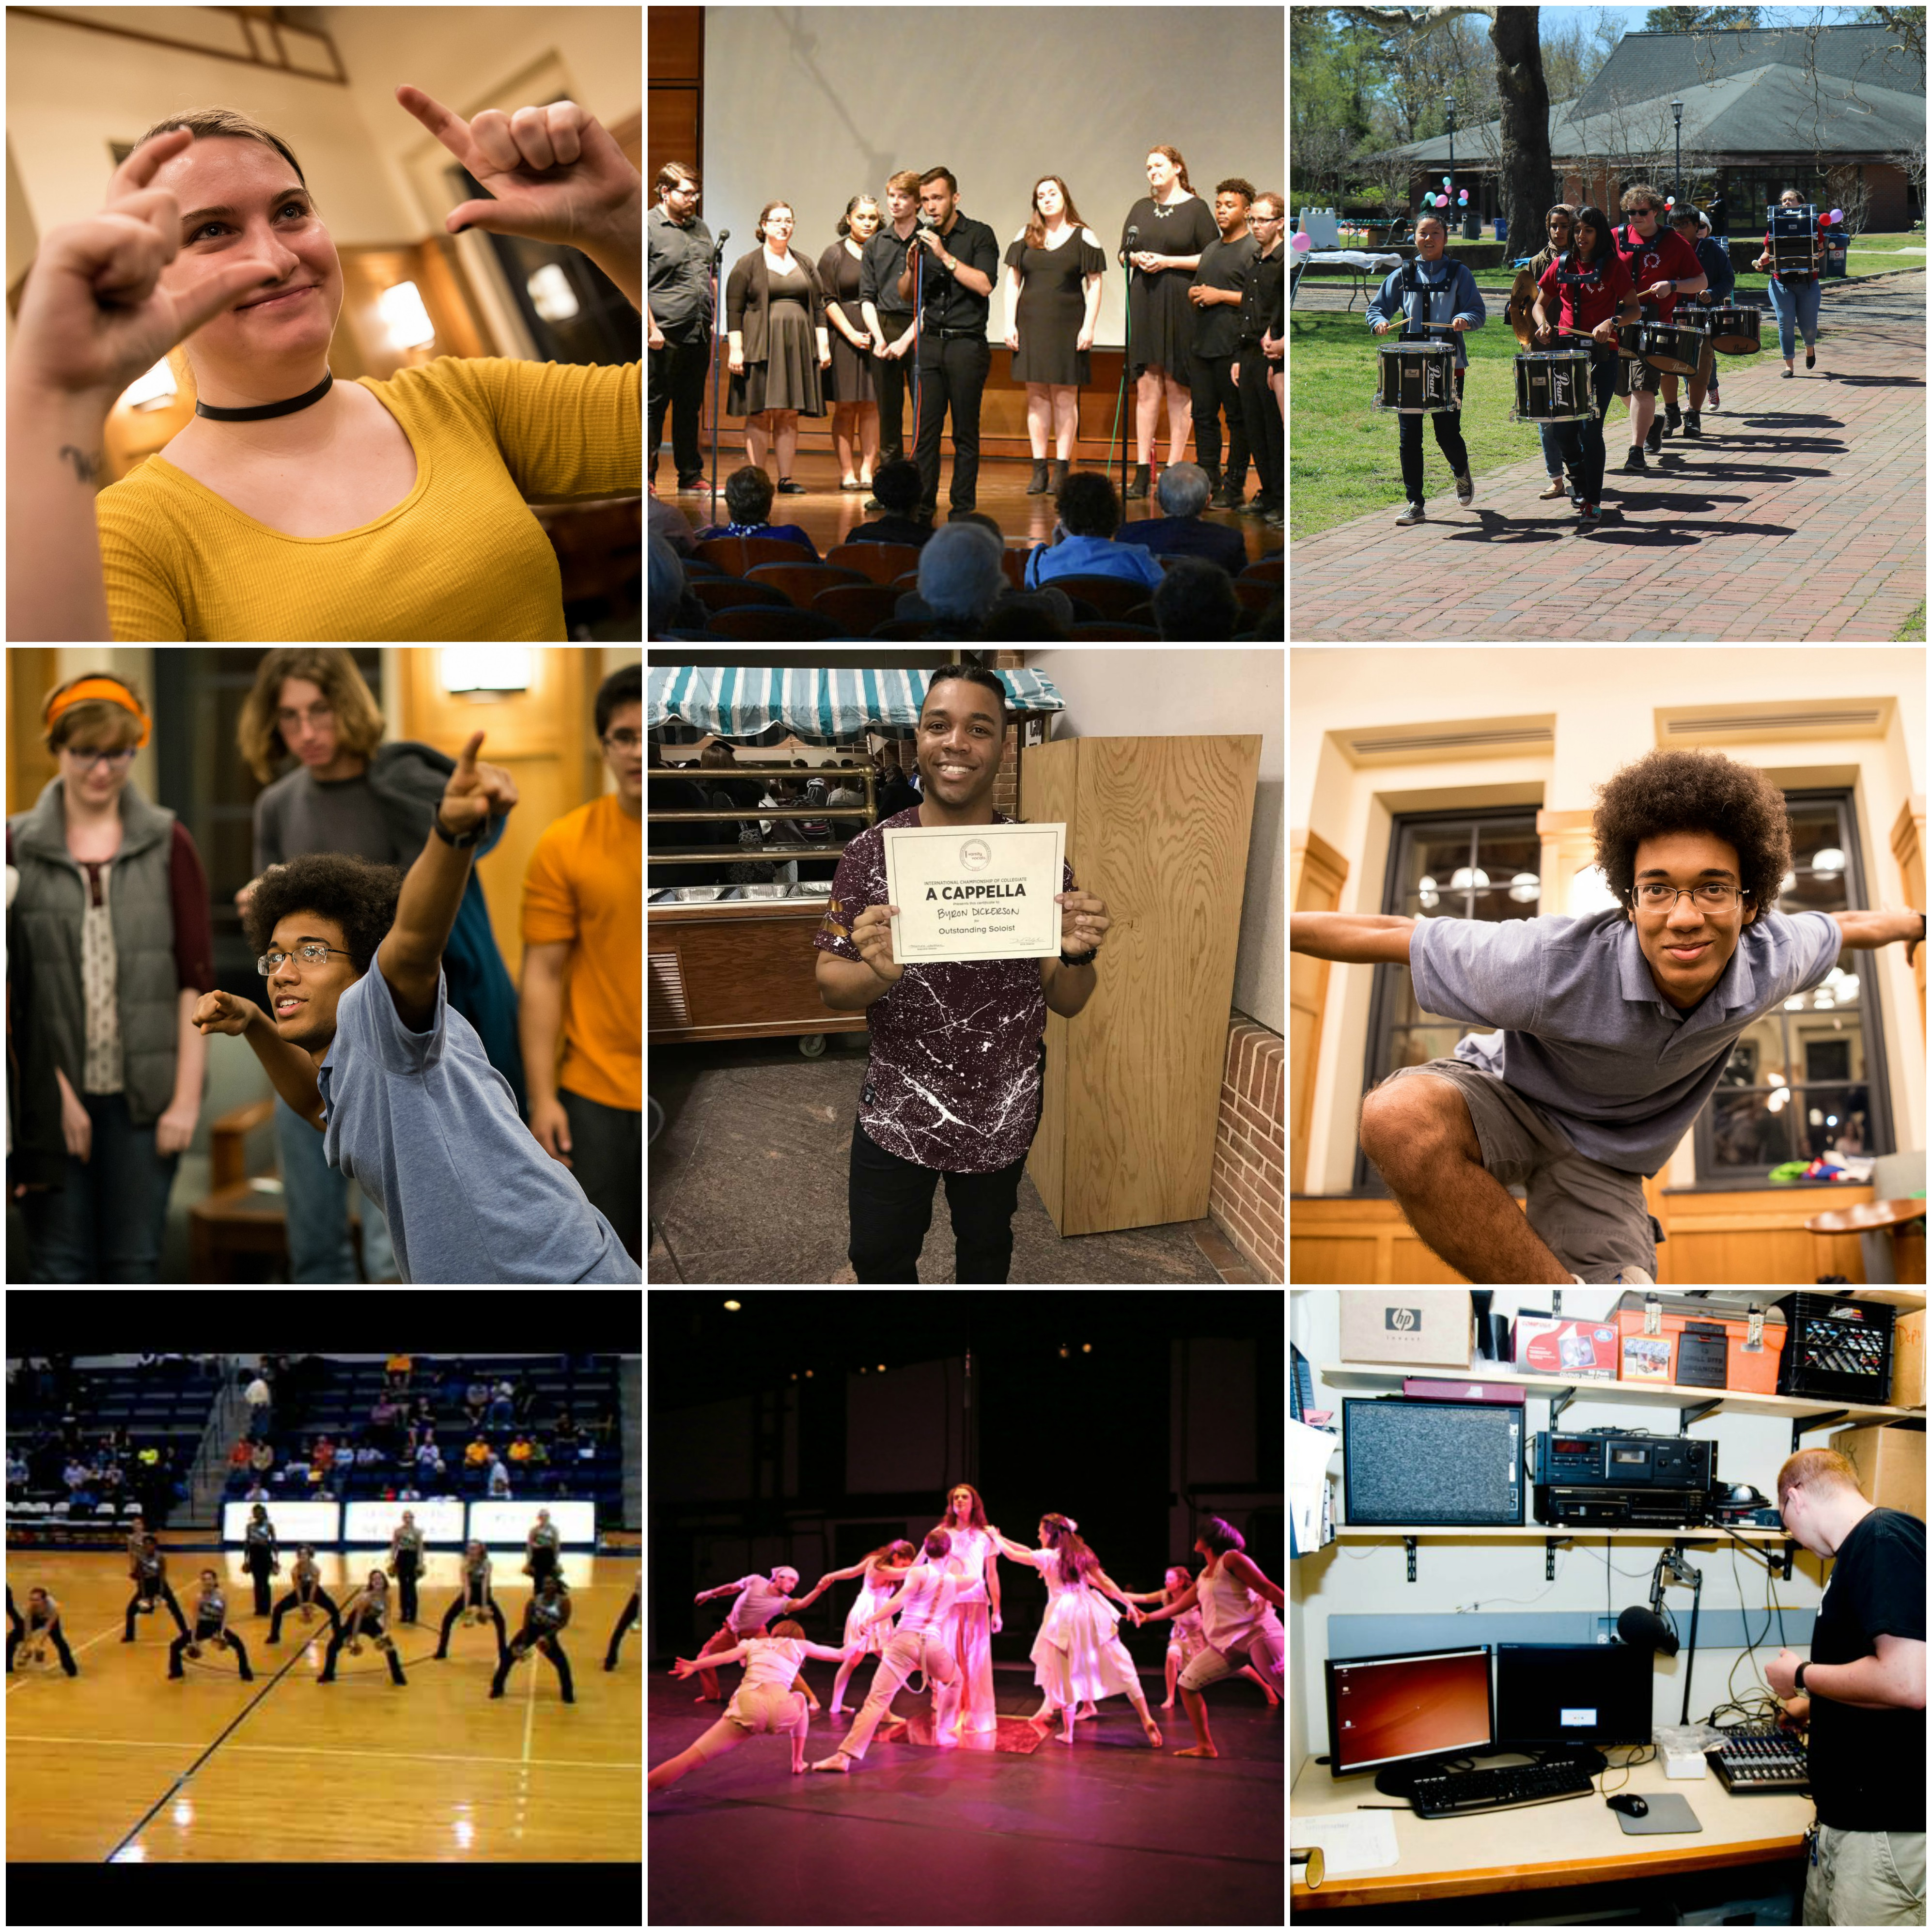 Collage of 9 square photos representing some of the performance clubs on campus. Images include: students pretending to take a picture, groups of students singing, drum band students, students performing in a group, a student holding an Acappella certificate, students dancing during ahalf time basketball game, and students working on computers.